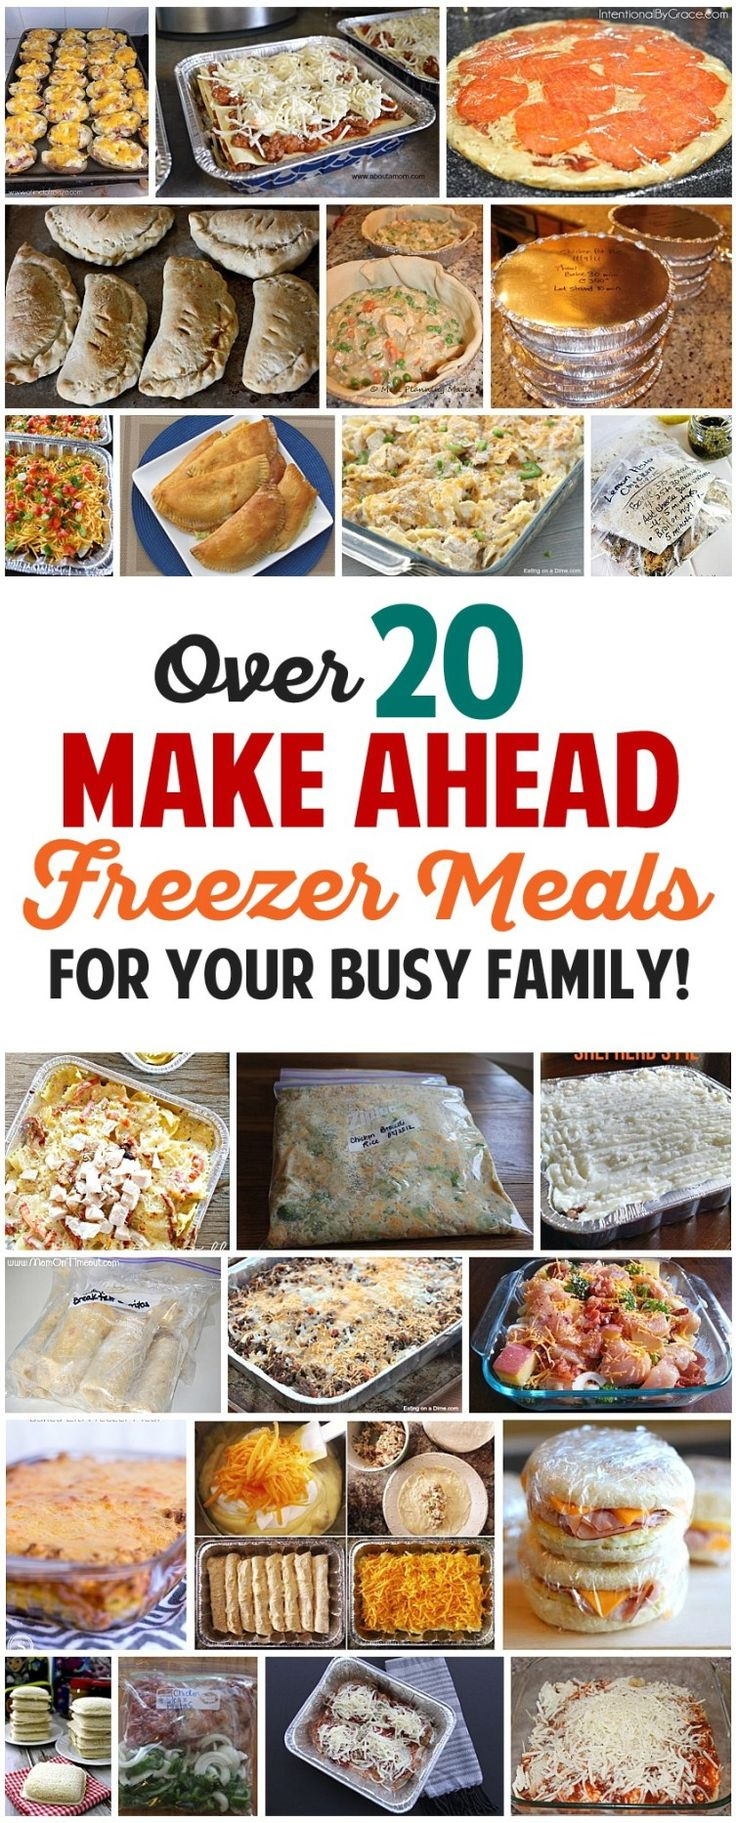 7 Freezer Meal Plans: 100 healthy & budget friendly Freezer Meals for your family to save time, money and sanity. Learn how to meal prep now!